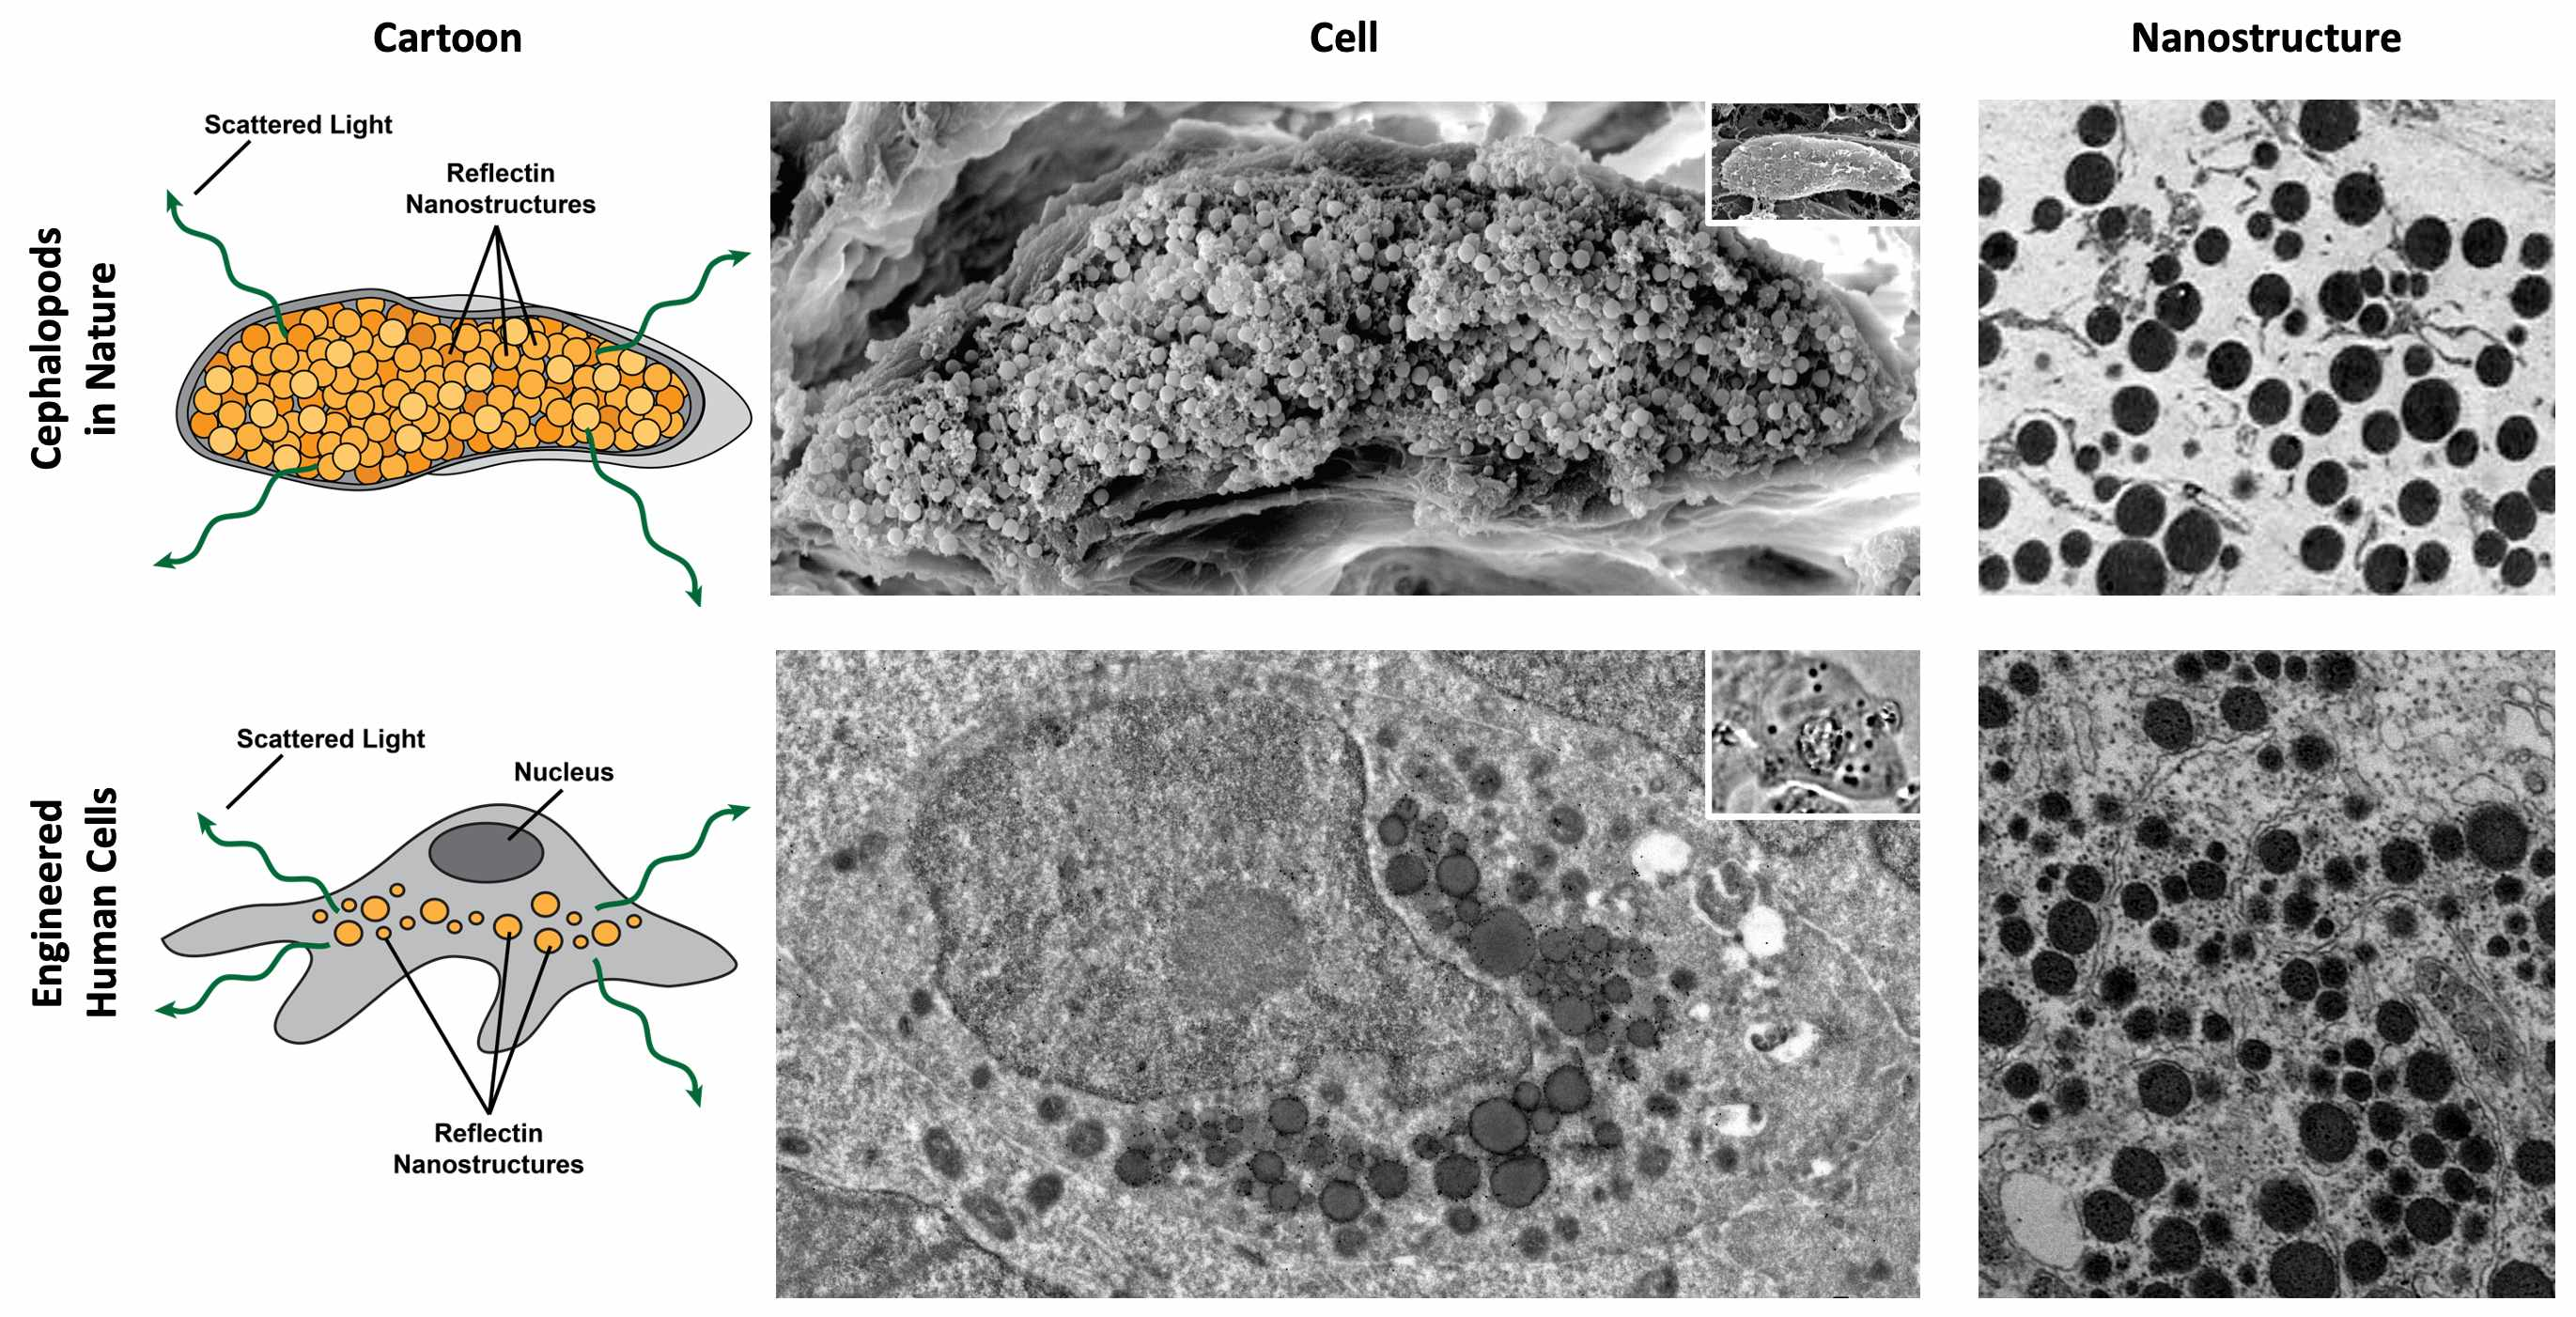 A comparison of the reflectin-based nanostructures in cuttlefish leucophores and the engineered human cells.